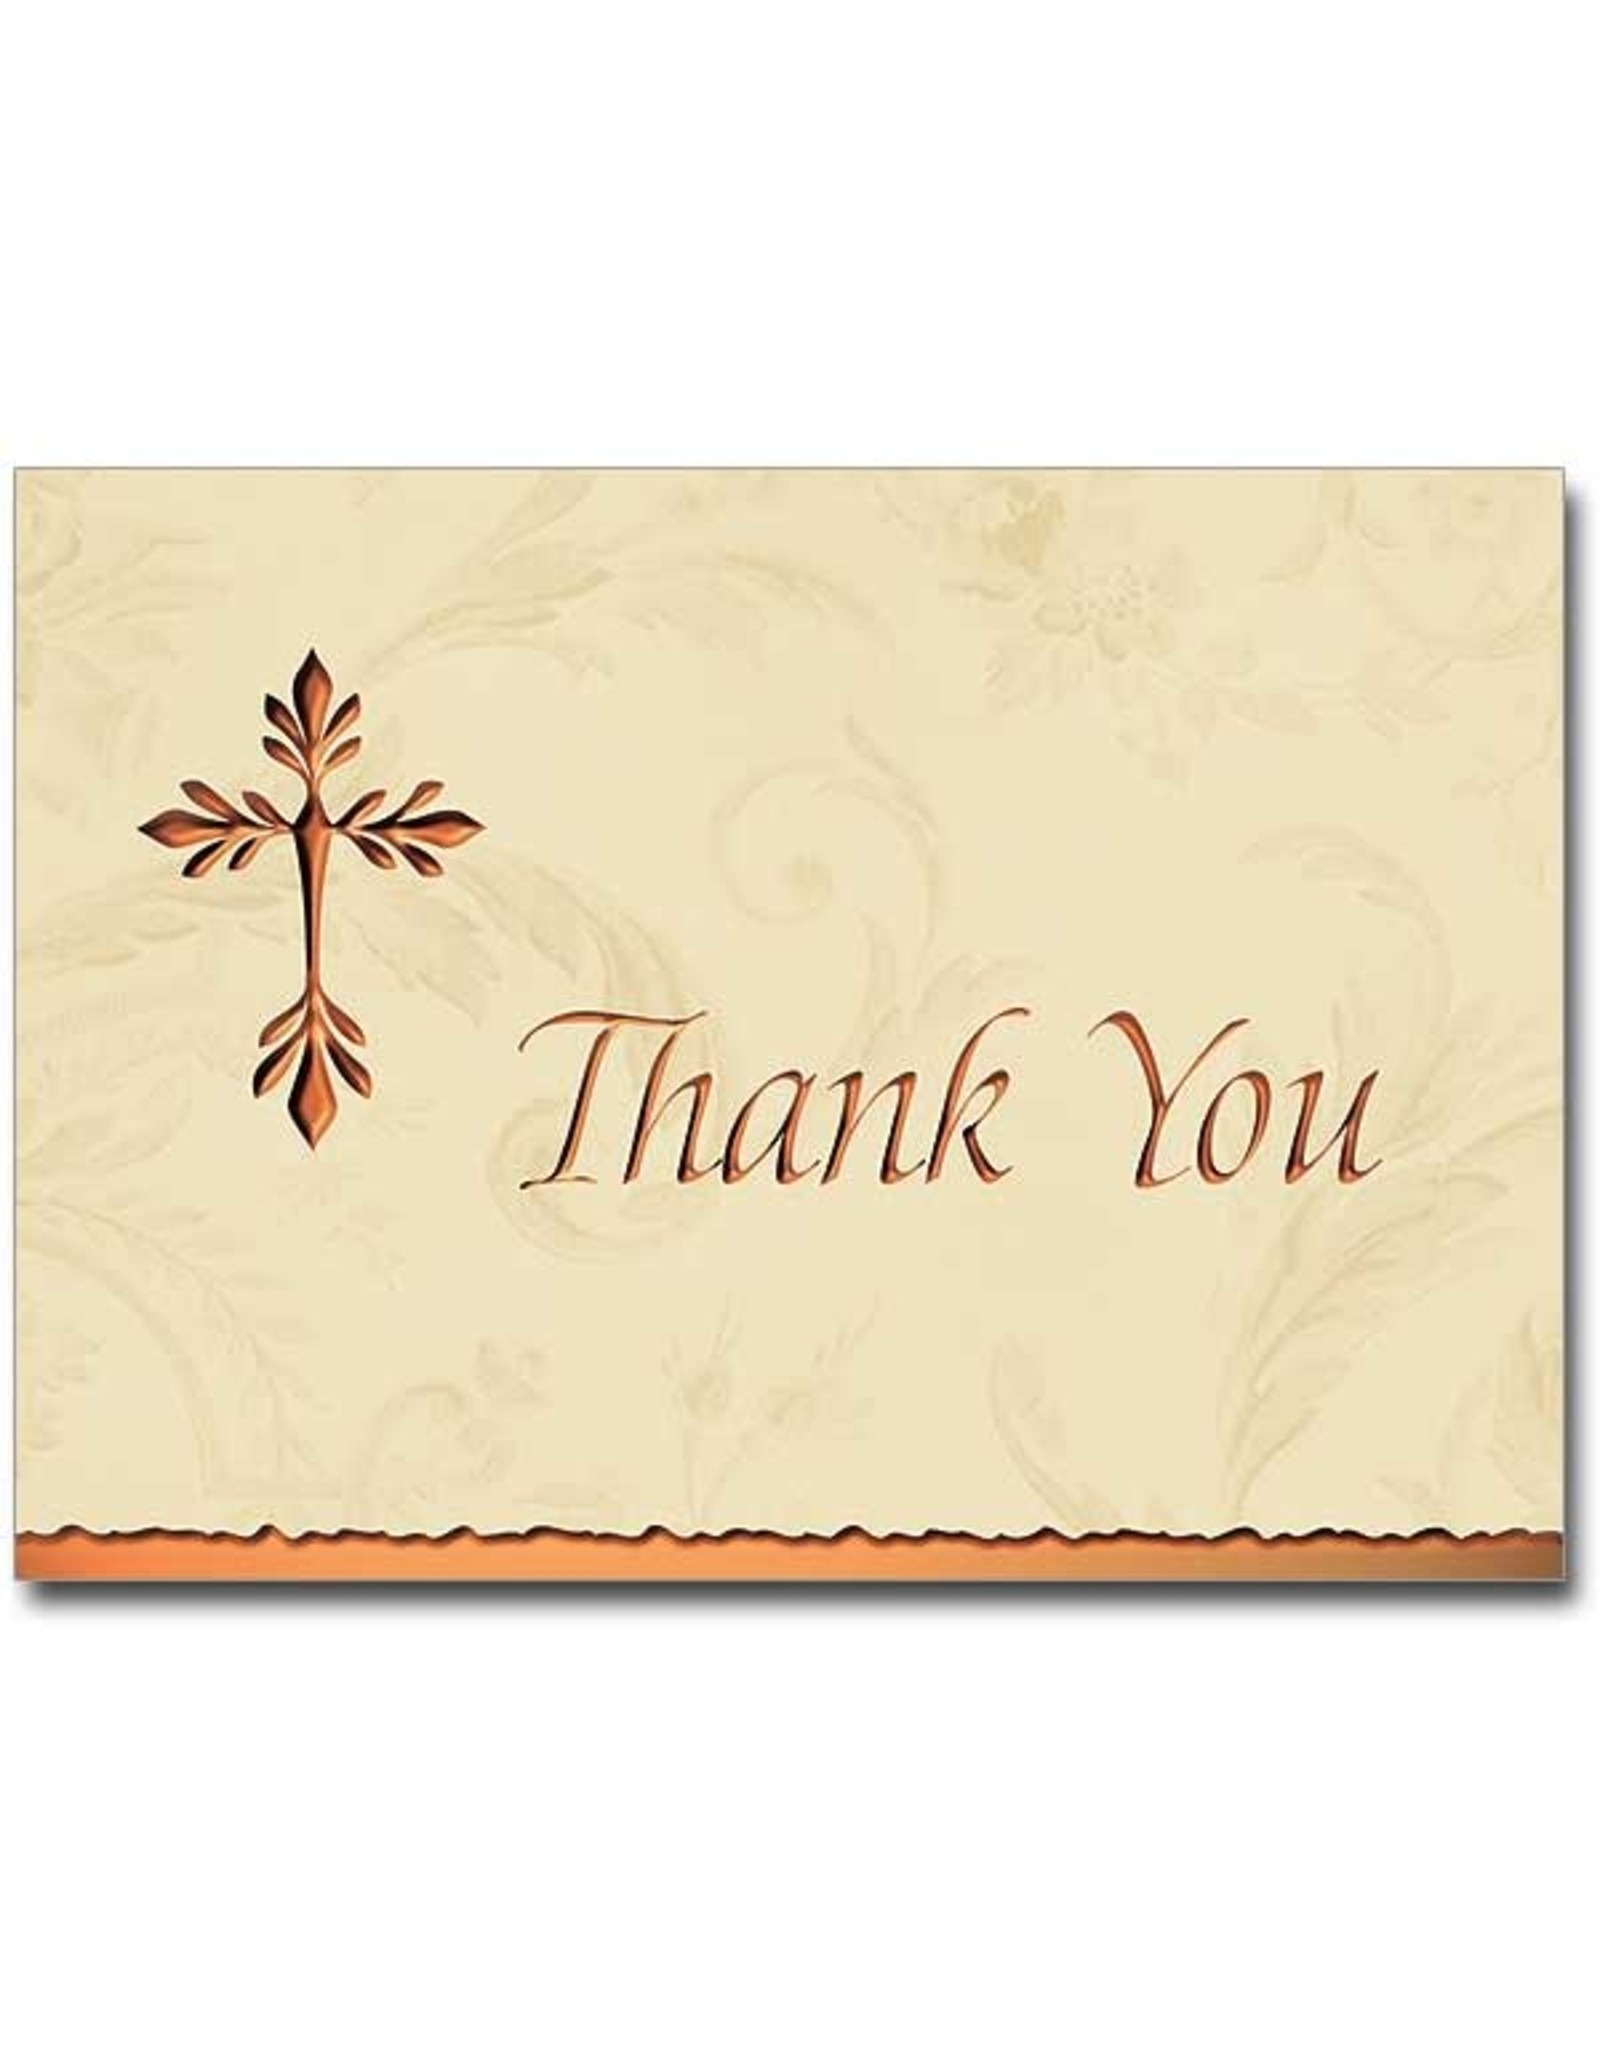 Boxed Cards - Thank You Tree of Life Cross (Pack of 12)